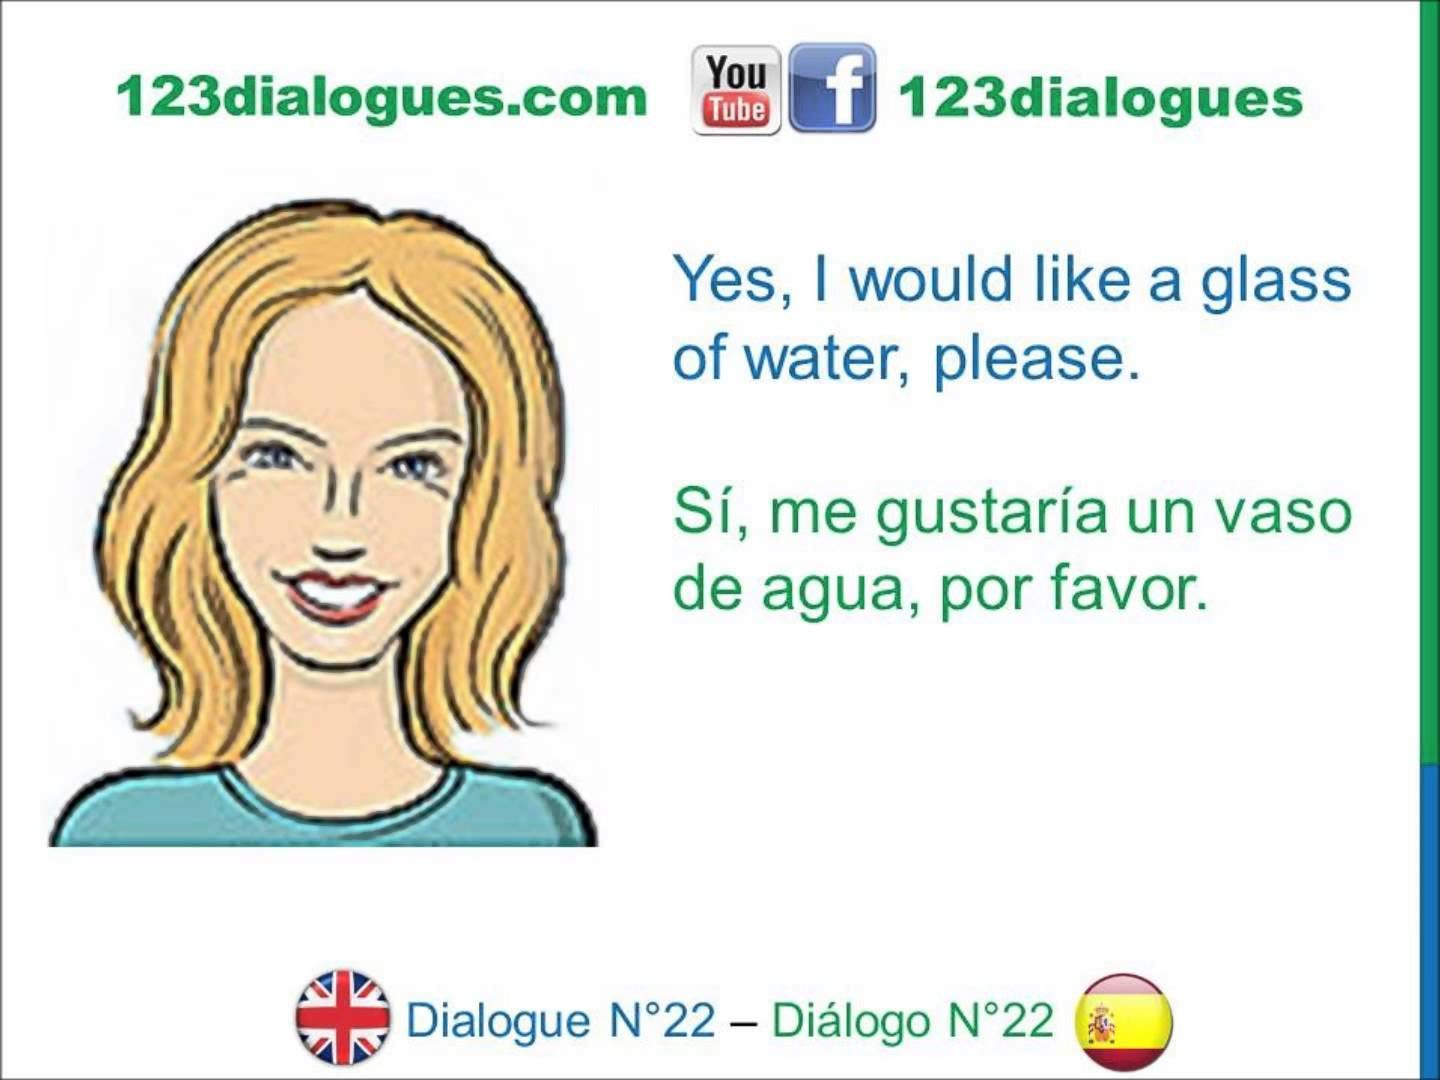 Dialogue 22 - Inglés Spanish - Drinks I'm thirsty - Bebidas Tengo sed #i'mthirsty Dialogue 22 - Inglés Spanish - Drinks I'm thirsty - Bebidas Tengo sed #imthirsty